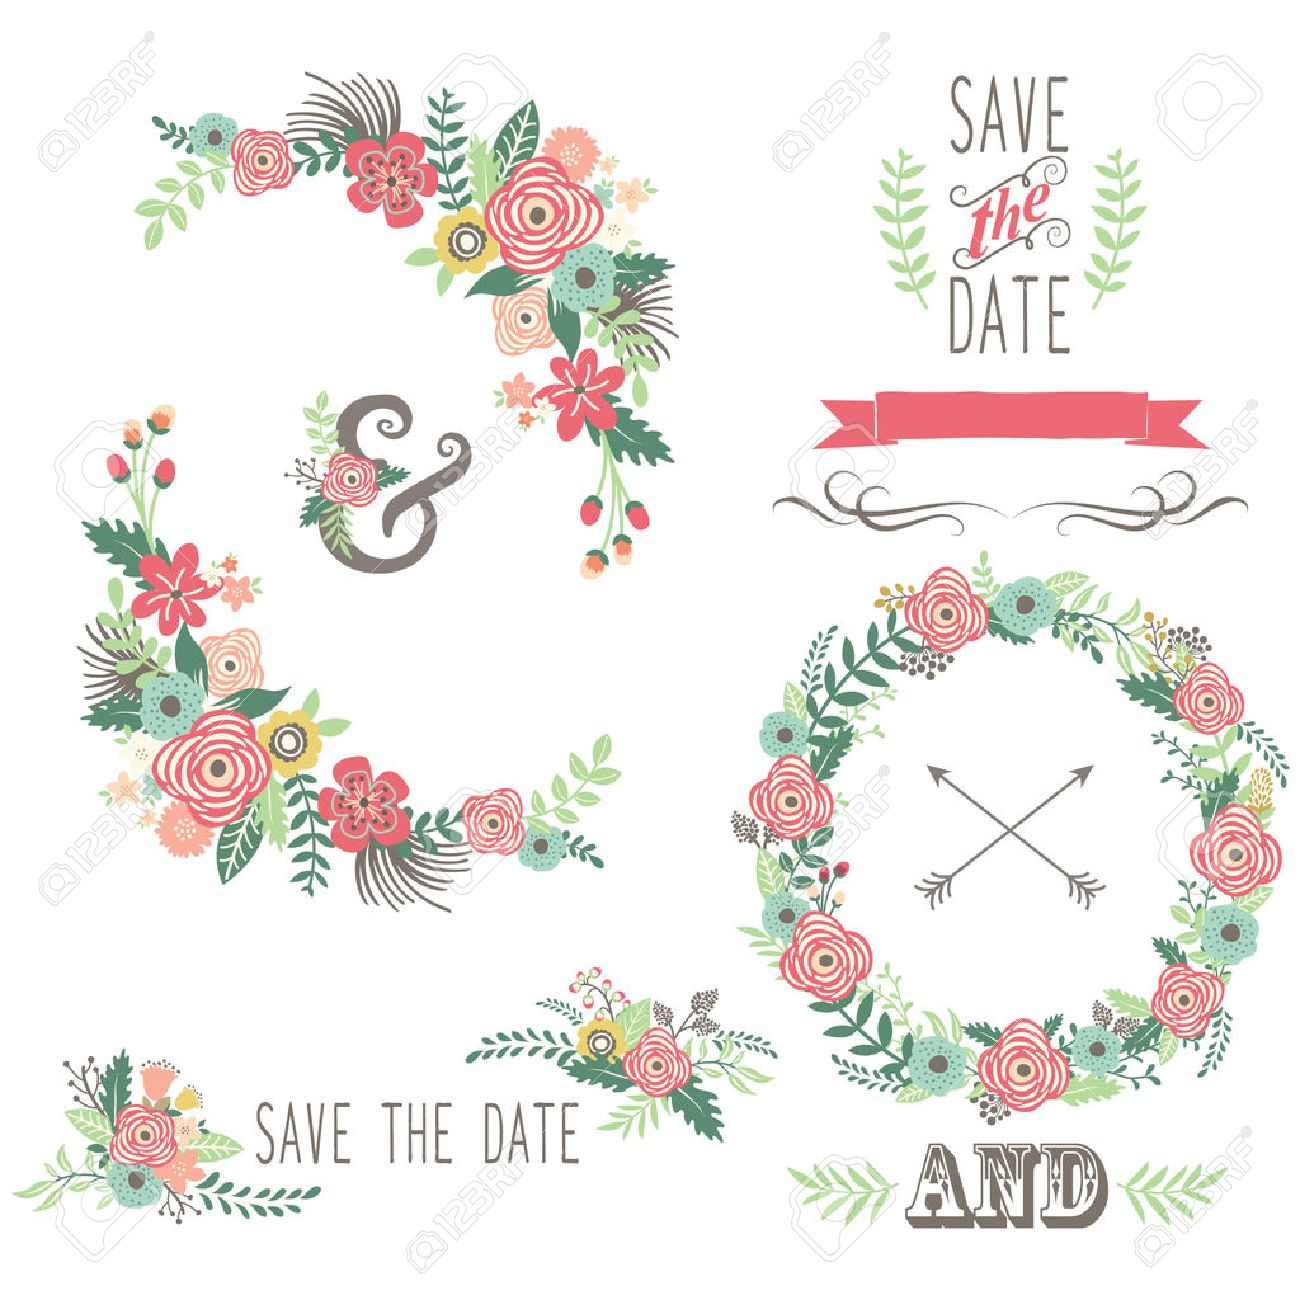 Wedding Vintage Floral Elements Royalty Free Cliparts Vectors